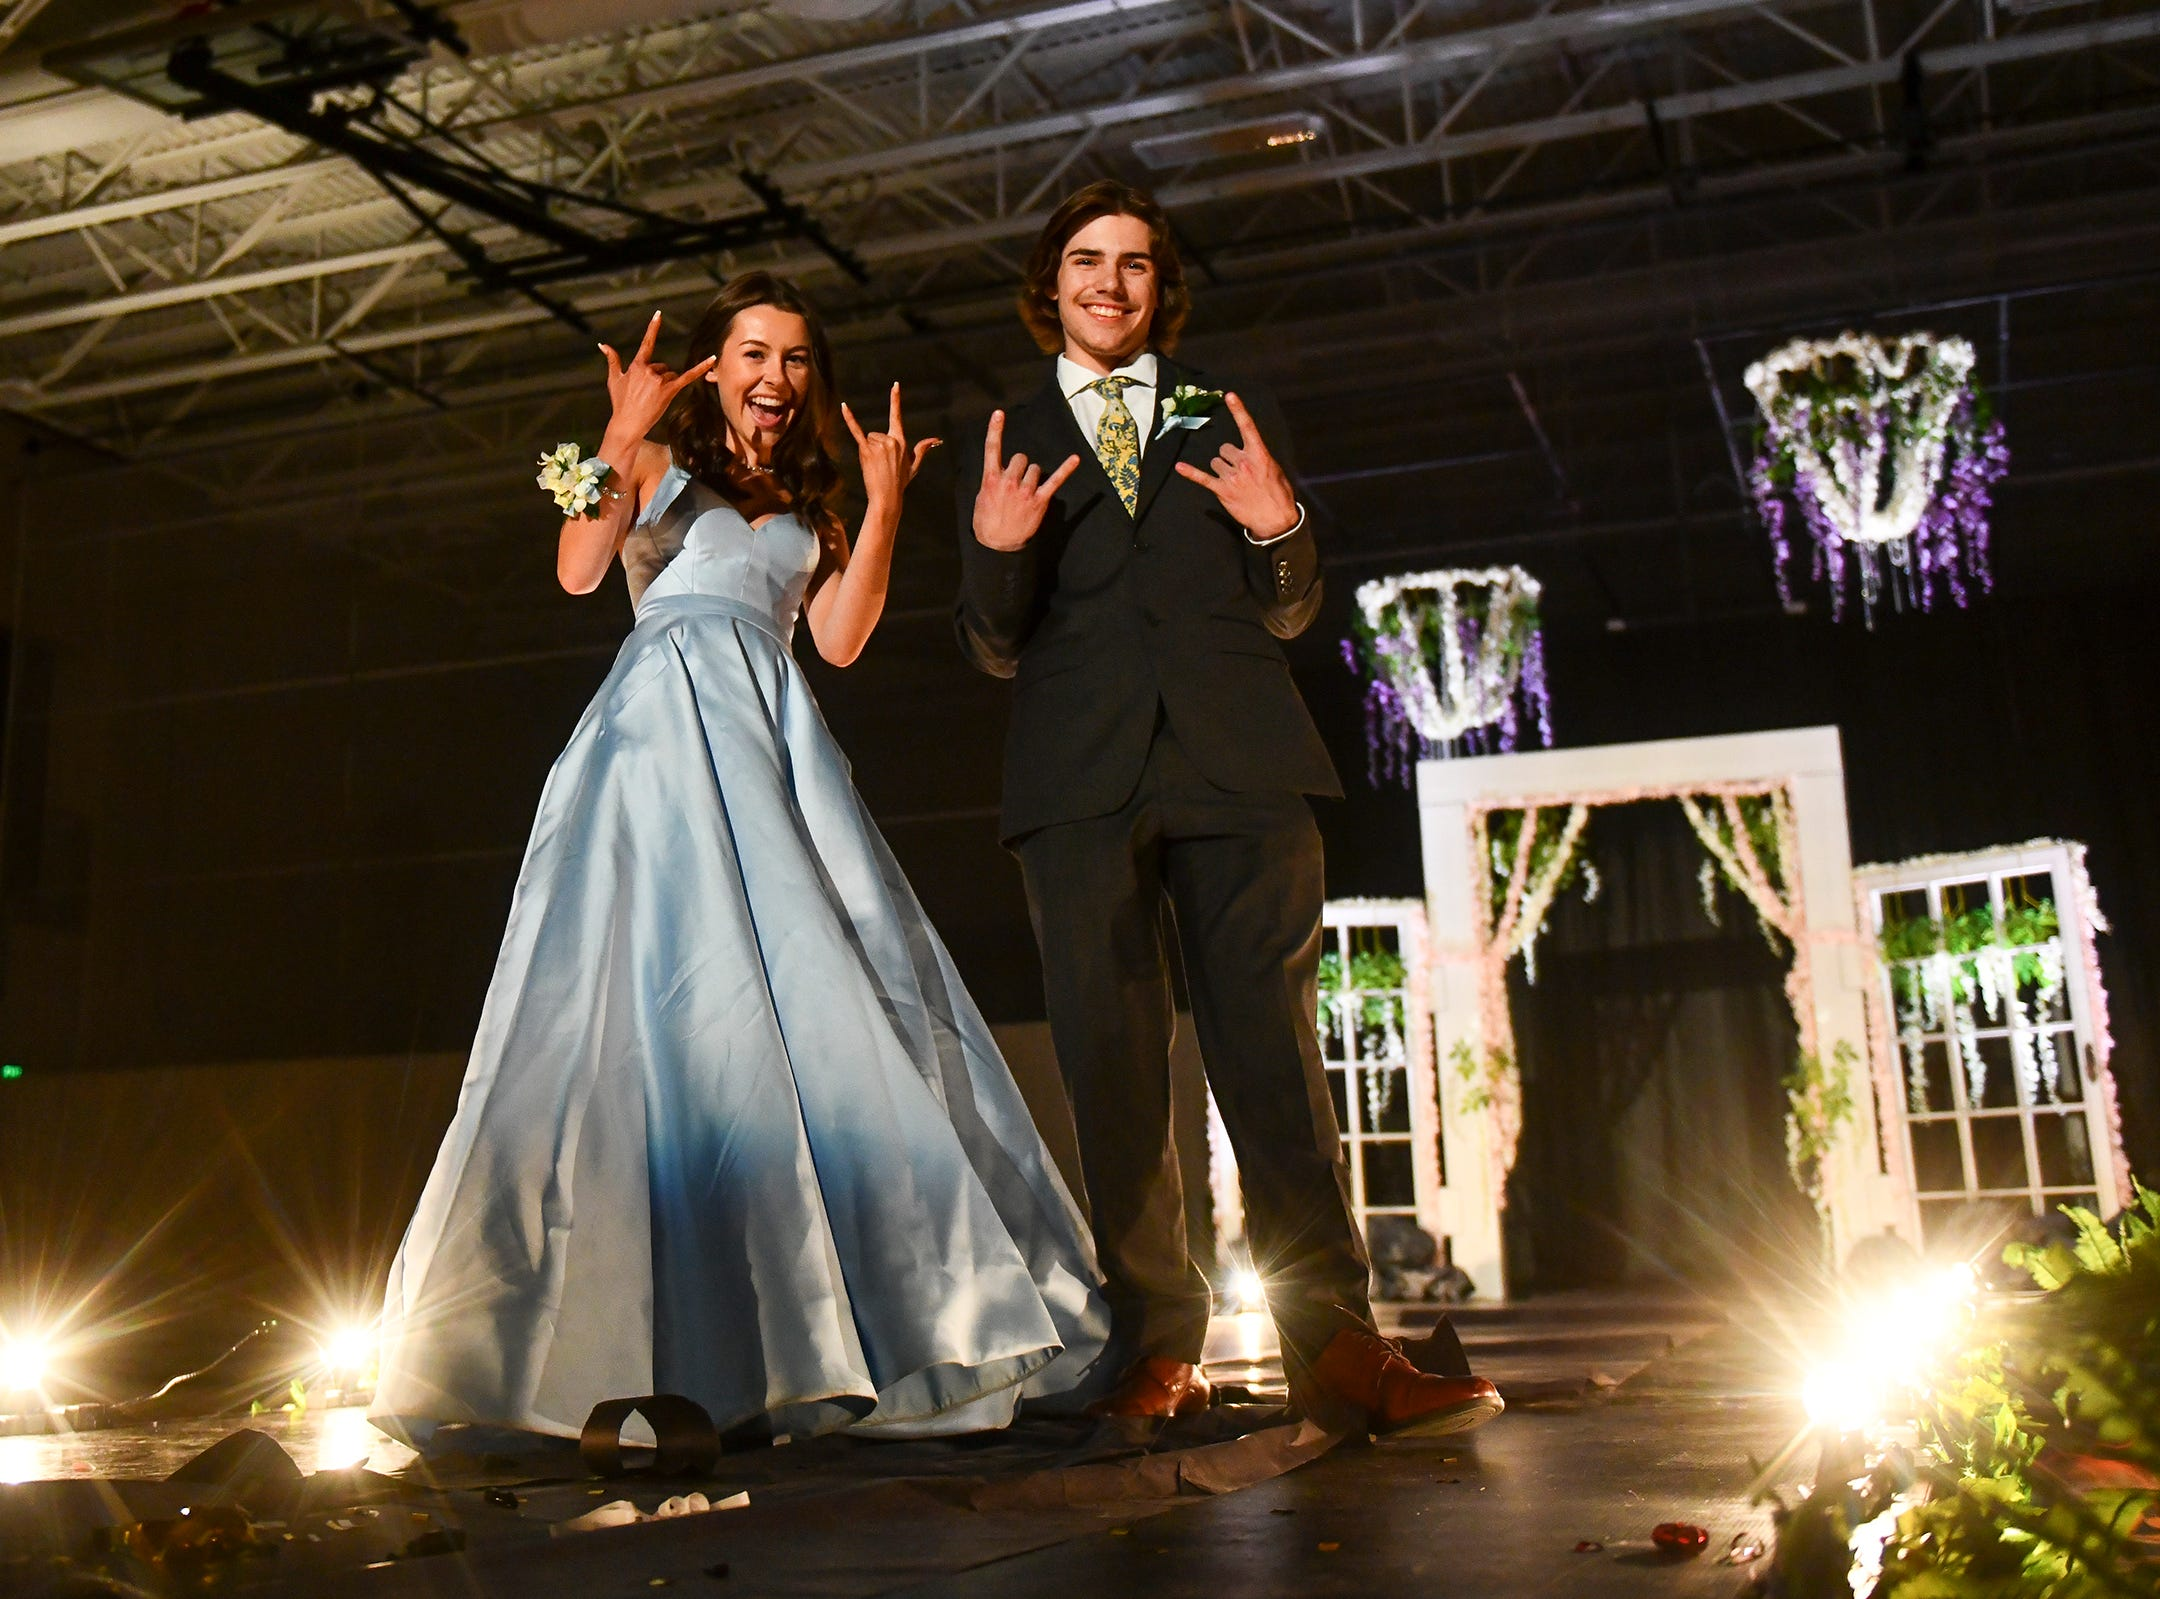 A couple strikes a pose during their turn at prom grand march.